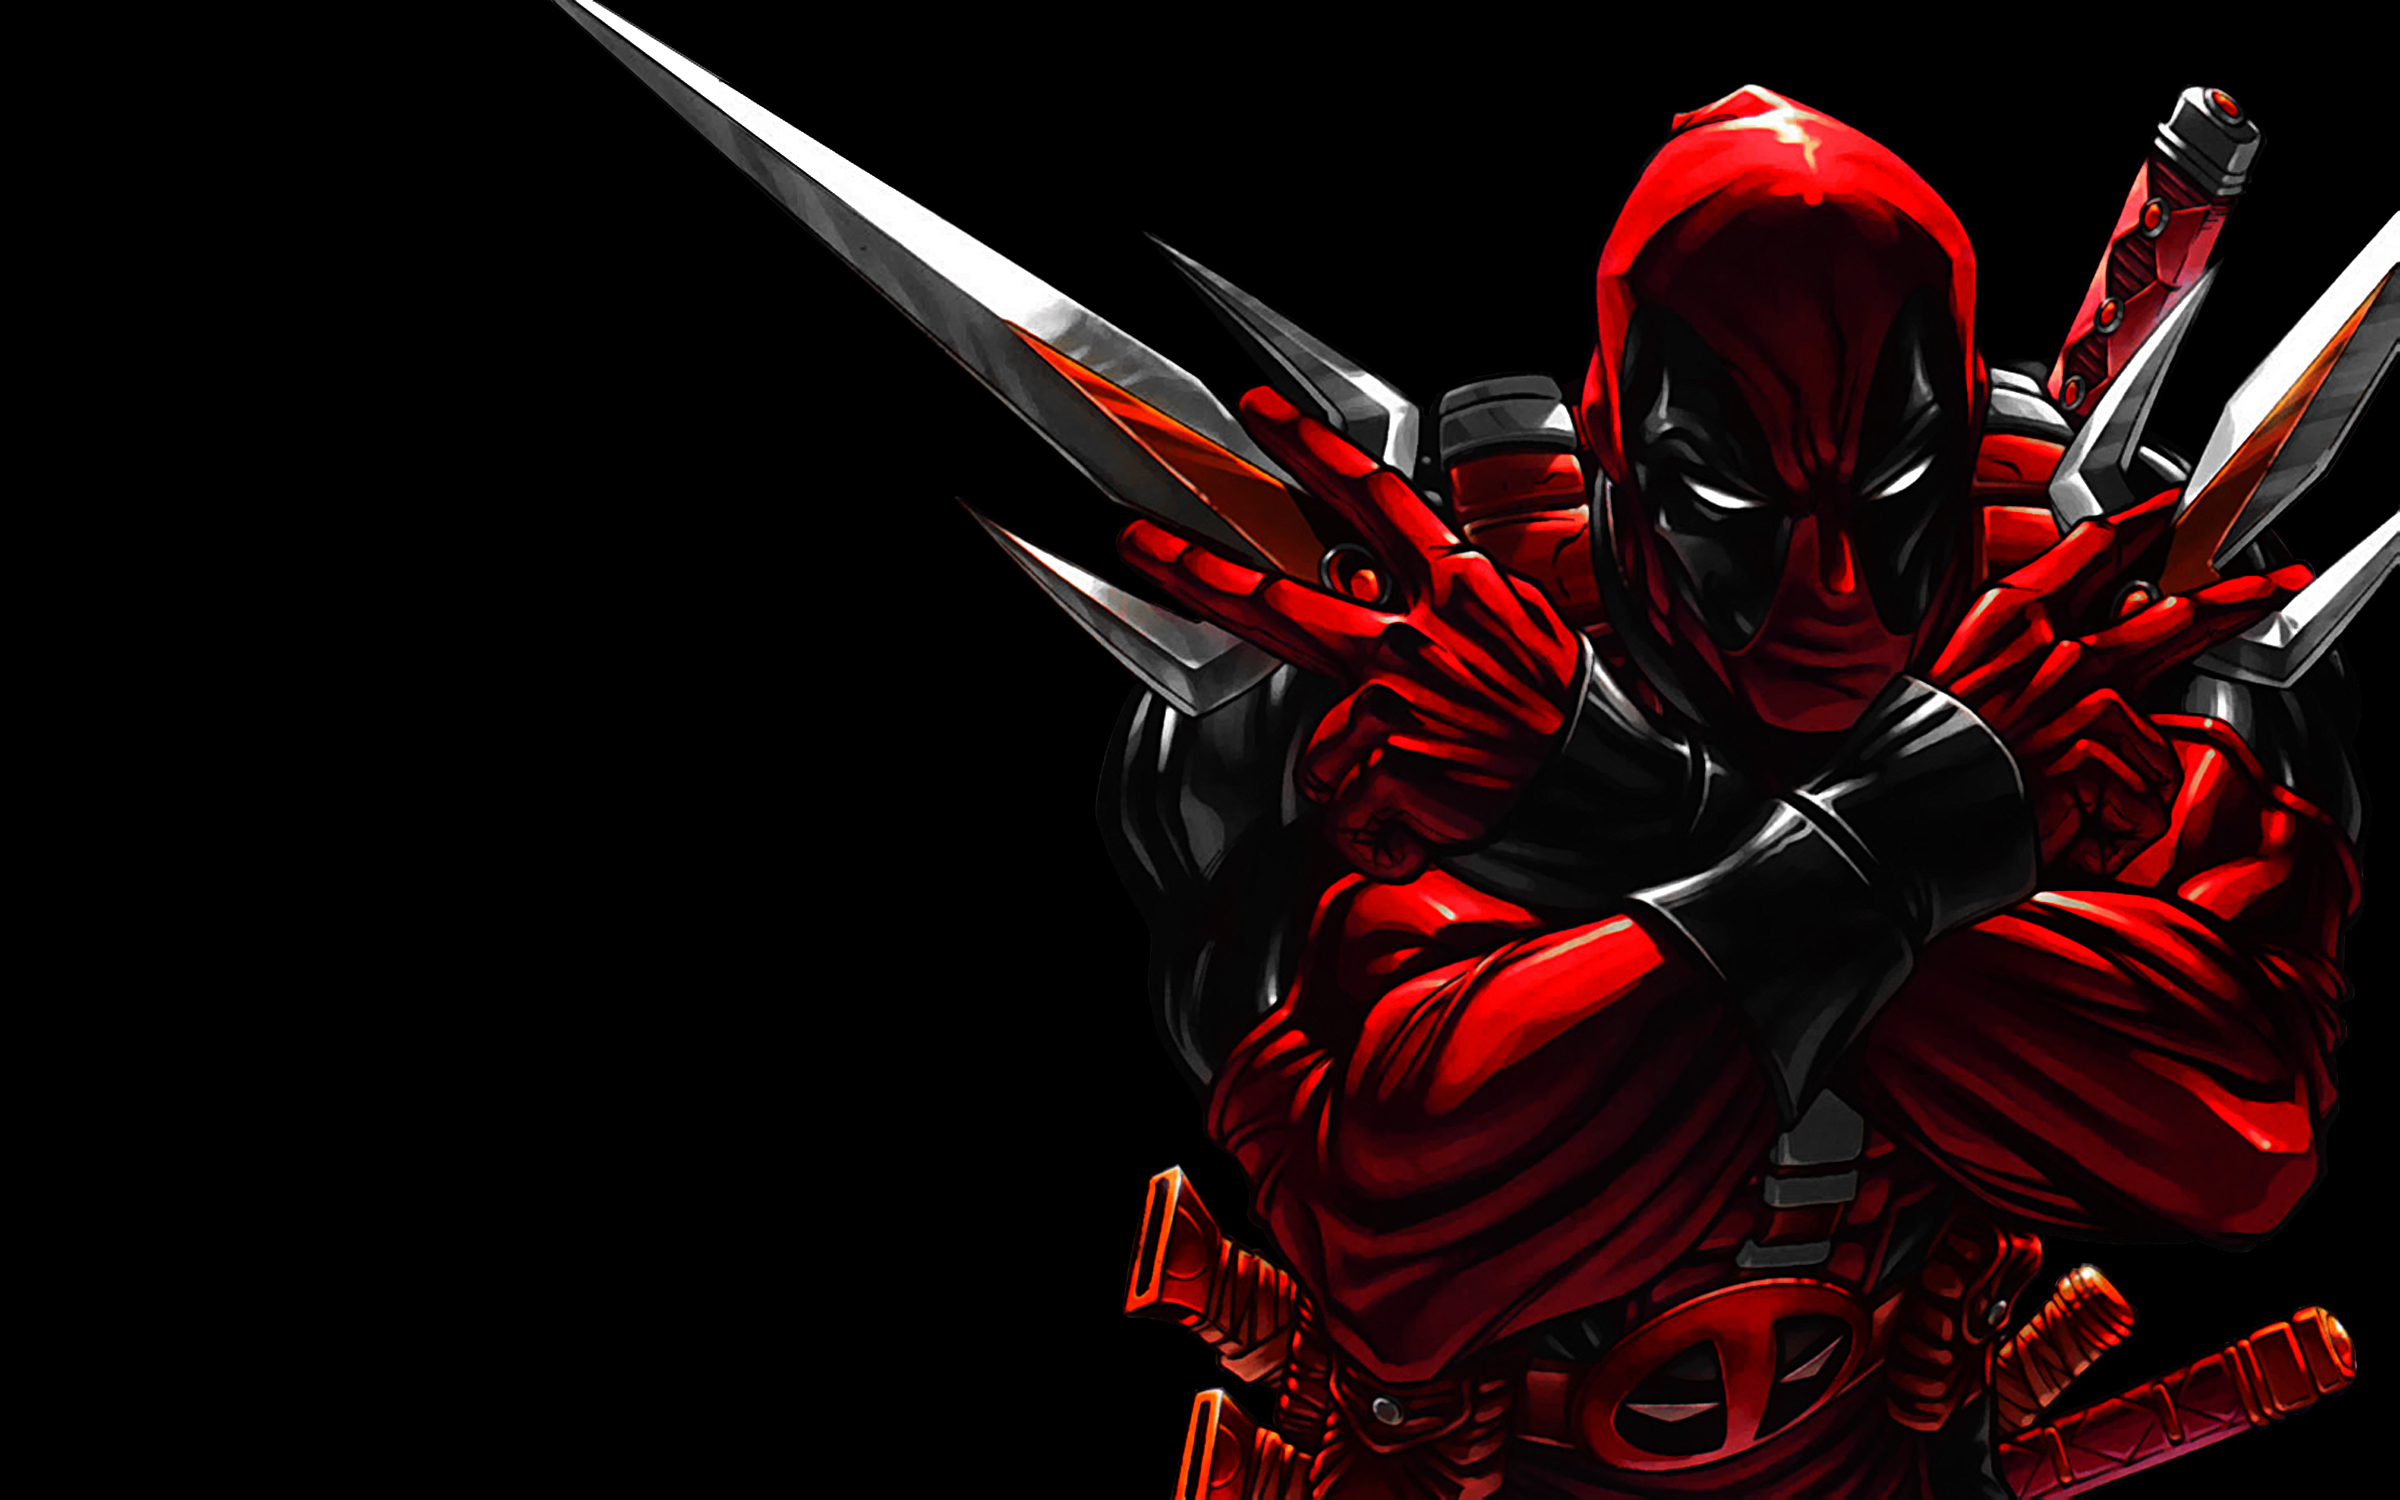 cool deadpool Wallpaper Background 18663 2400x1500